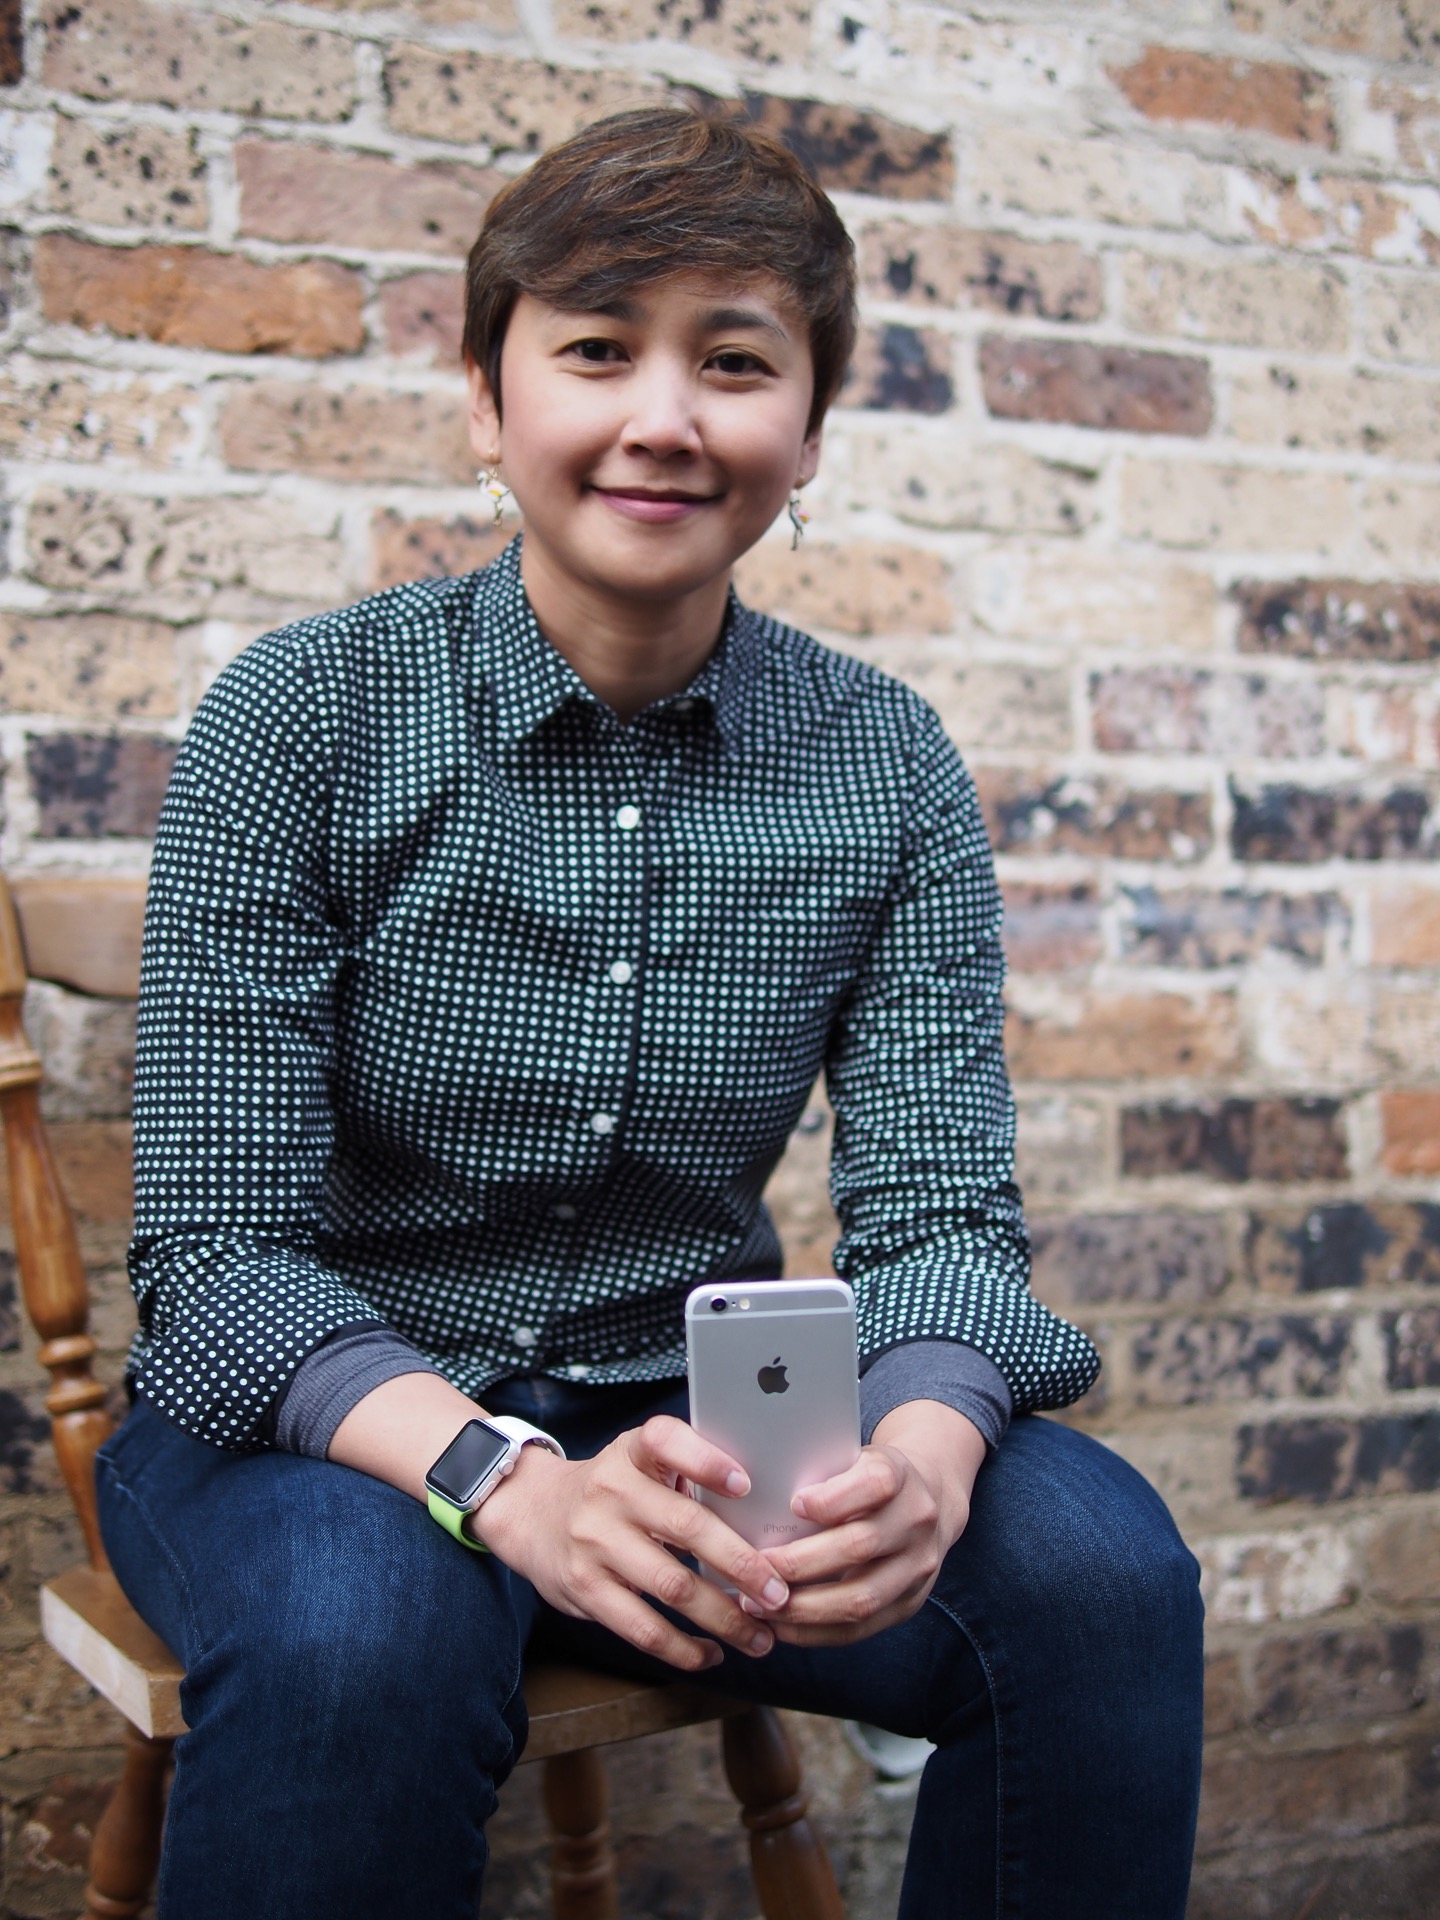 A picture of someone holding an iPhone 6 and sitting in front of a sand coloured brick wall